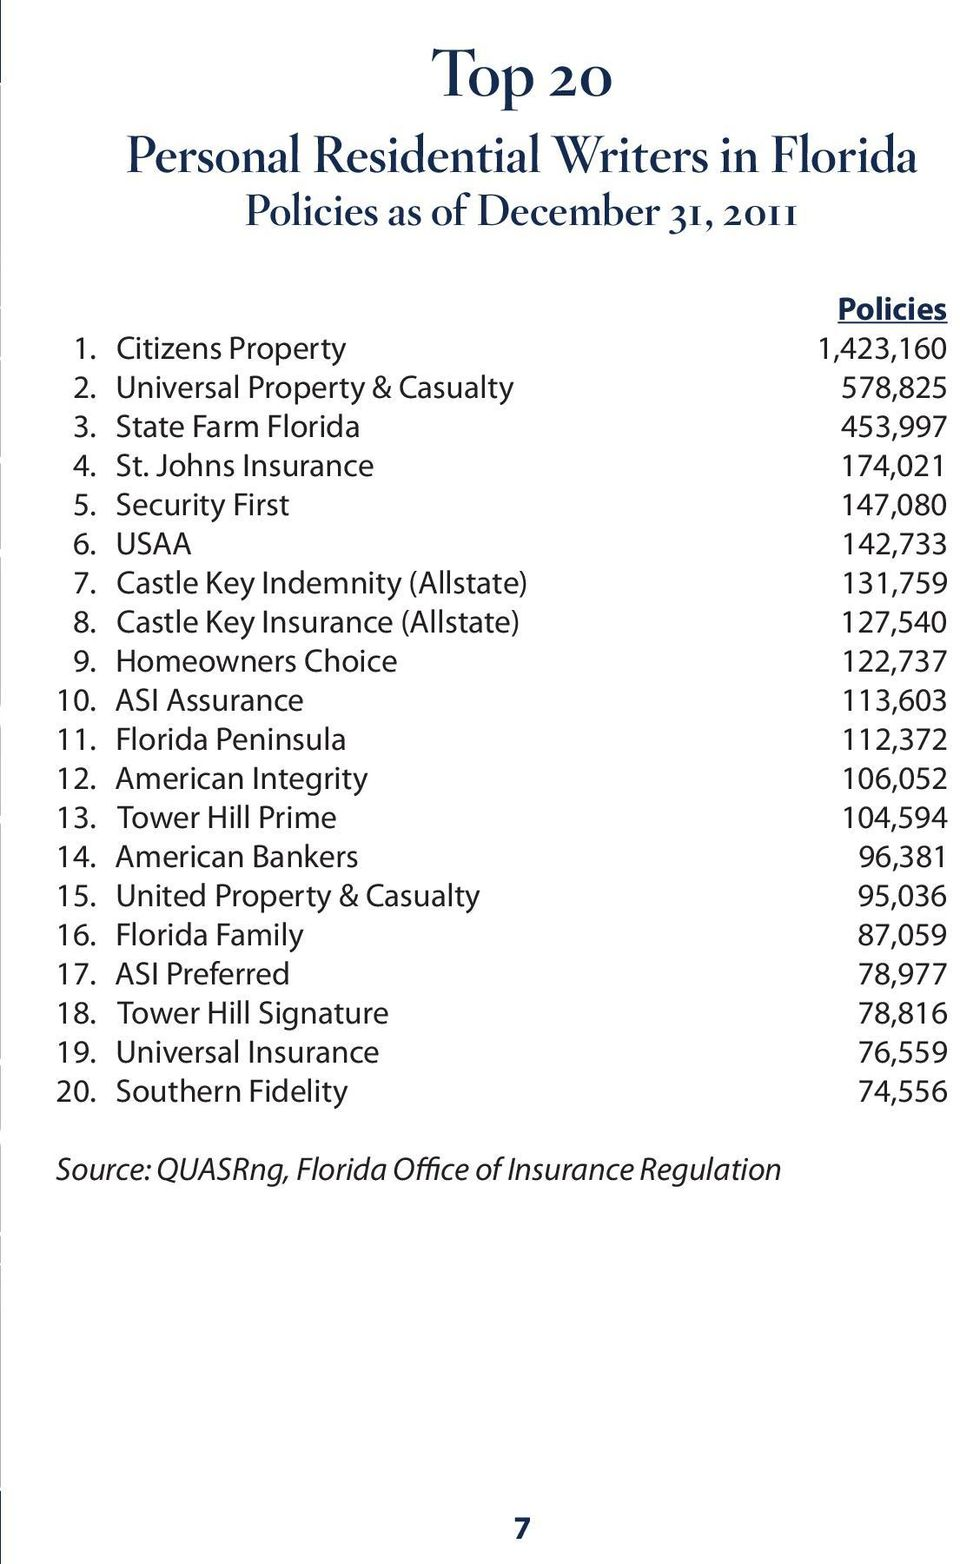 Homeowners Choice 122,737 10. ASI Assurance 113,603 11. Florida Peninsula 112,372 12. American Integrity 106,052 13. Tower Hill Prime 104,594 14. American Bankers 96,381 15.